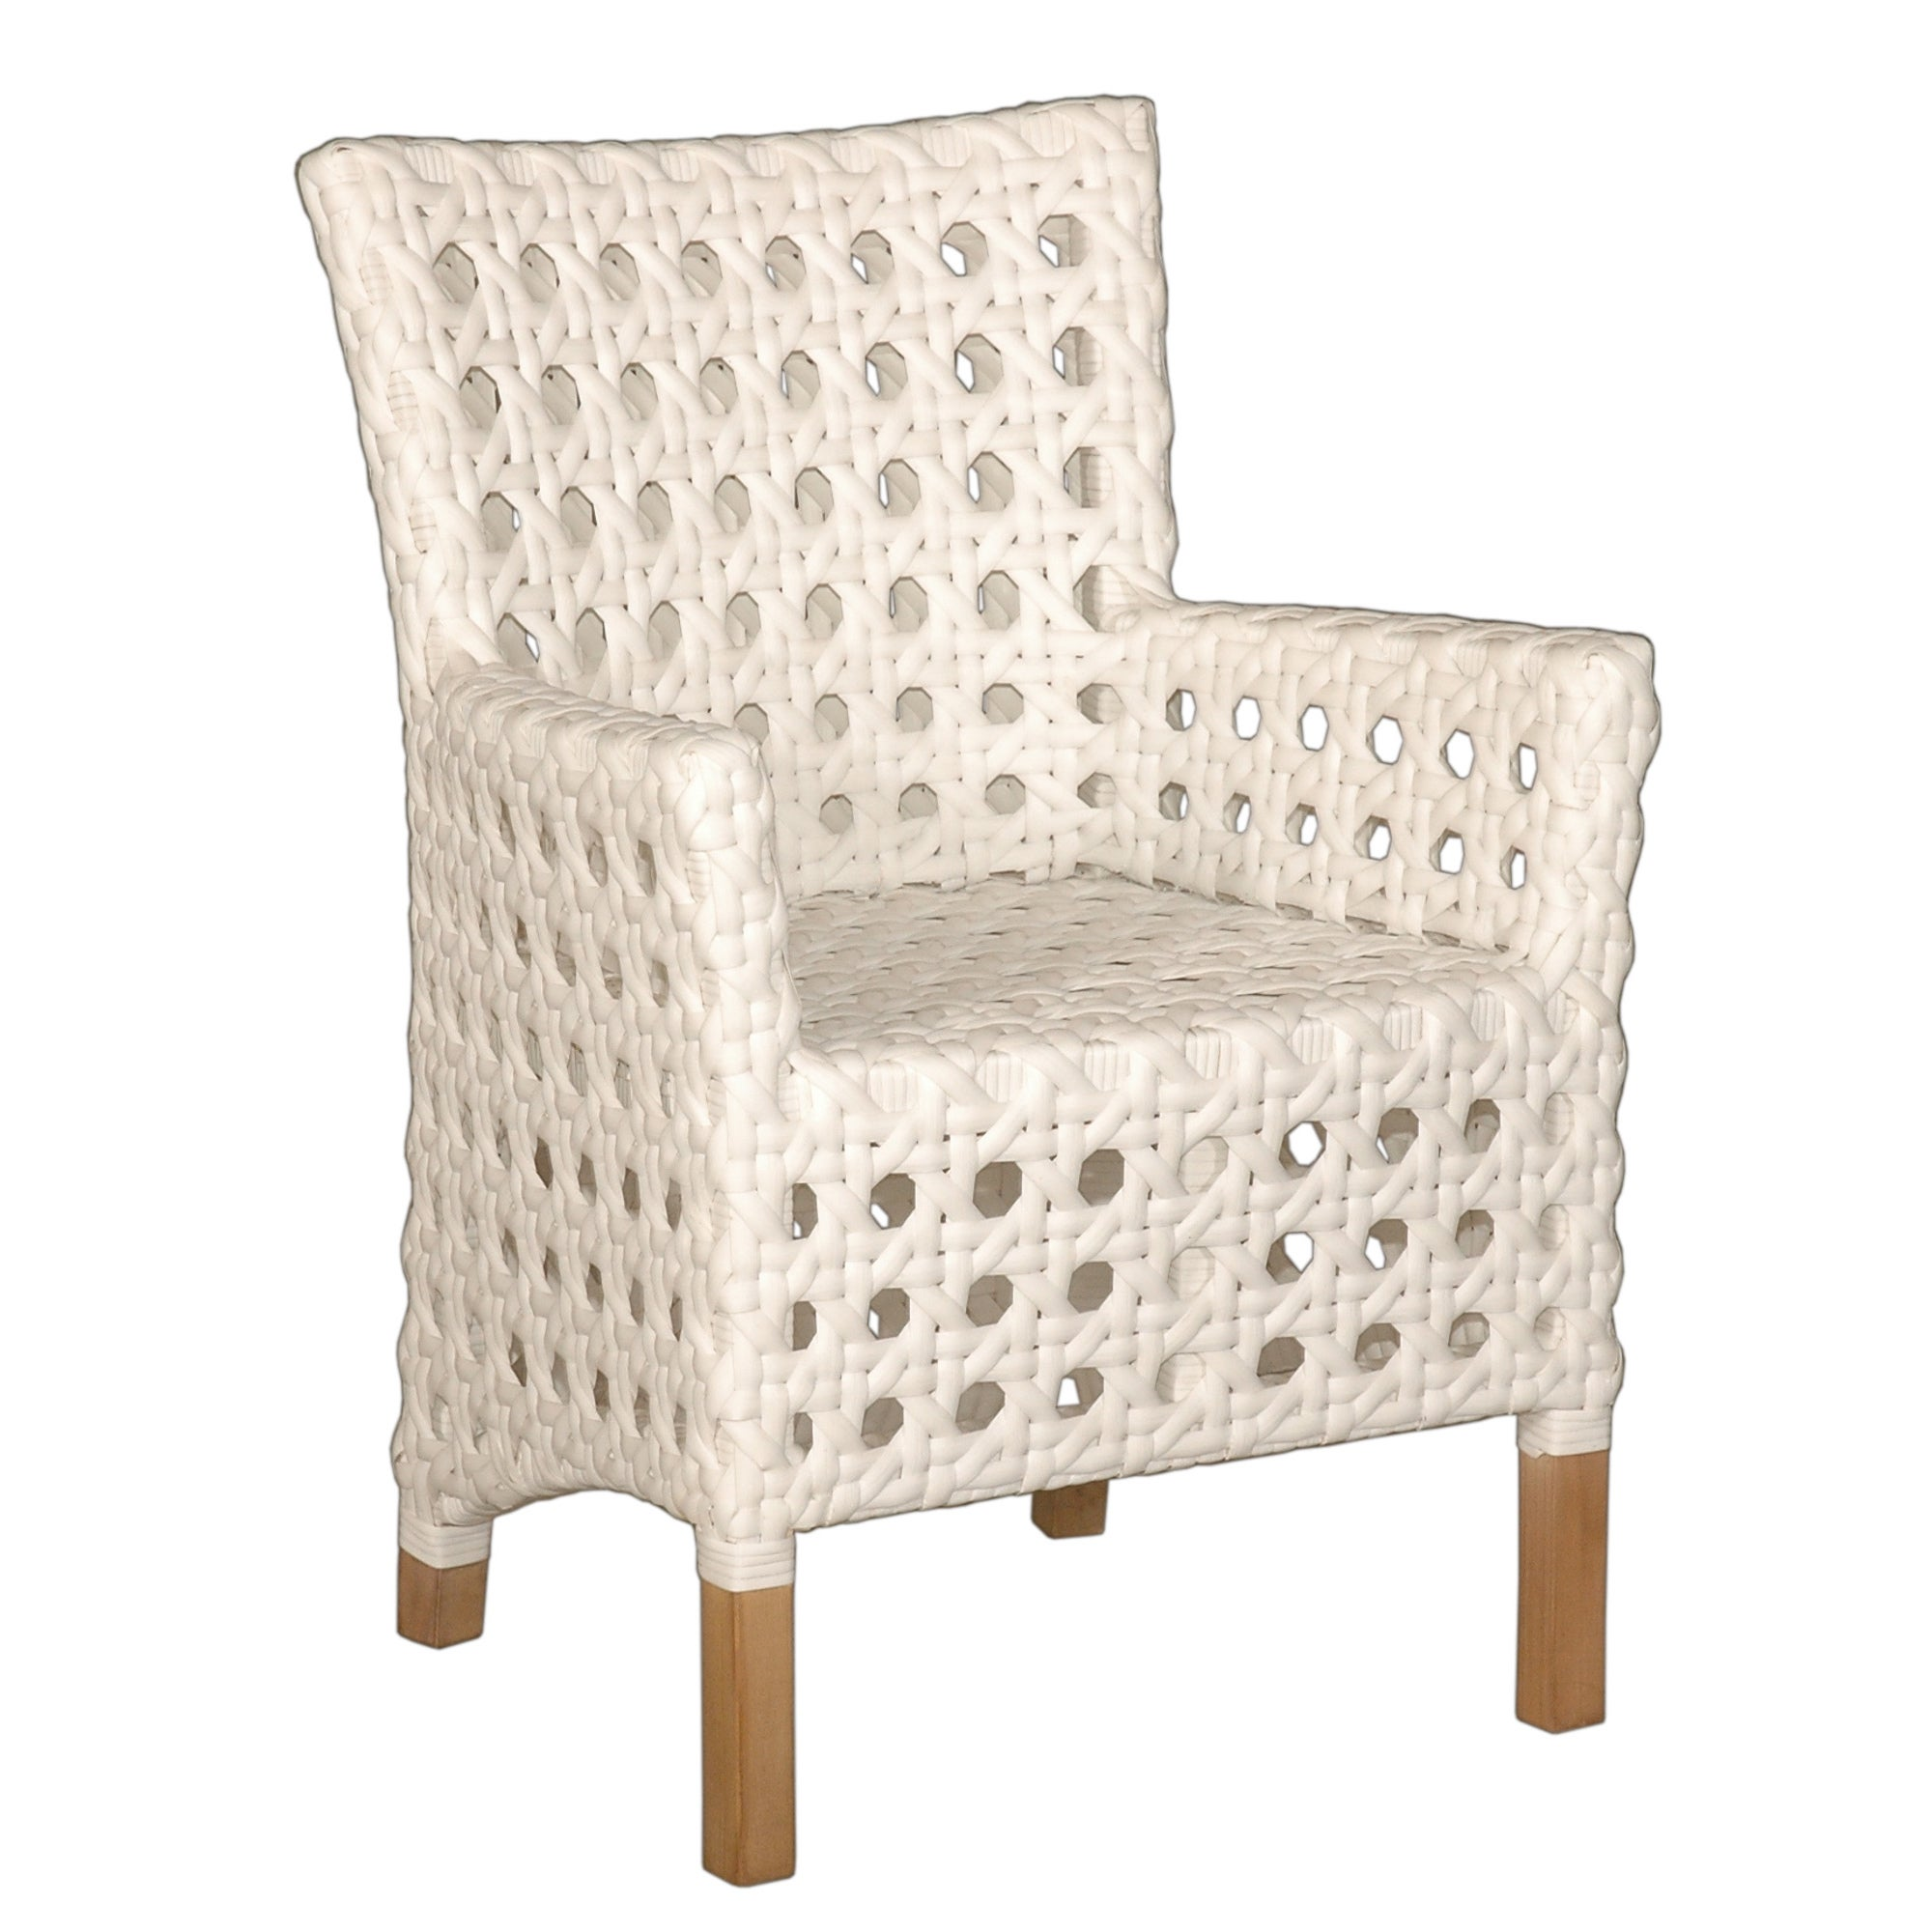 Shop east at mains decorative sacramento white modern indoor outdoor chair free shipping today overstock com 10395825